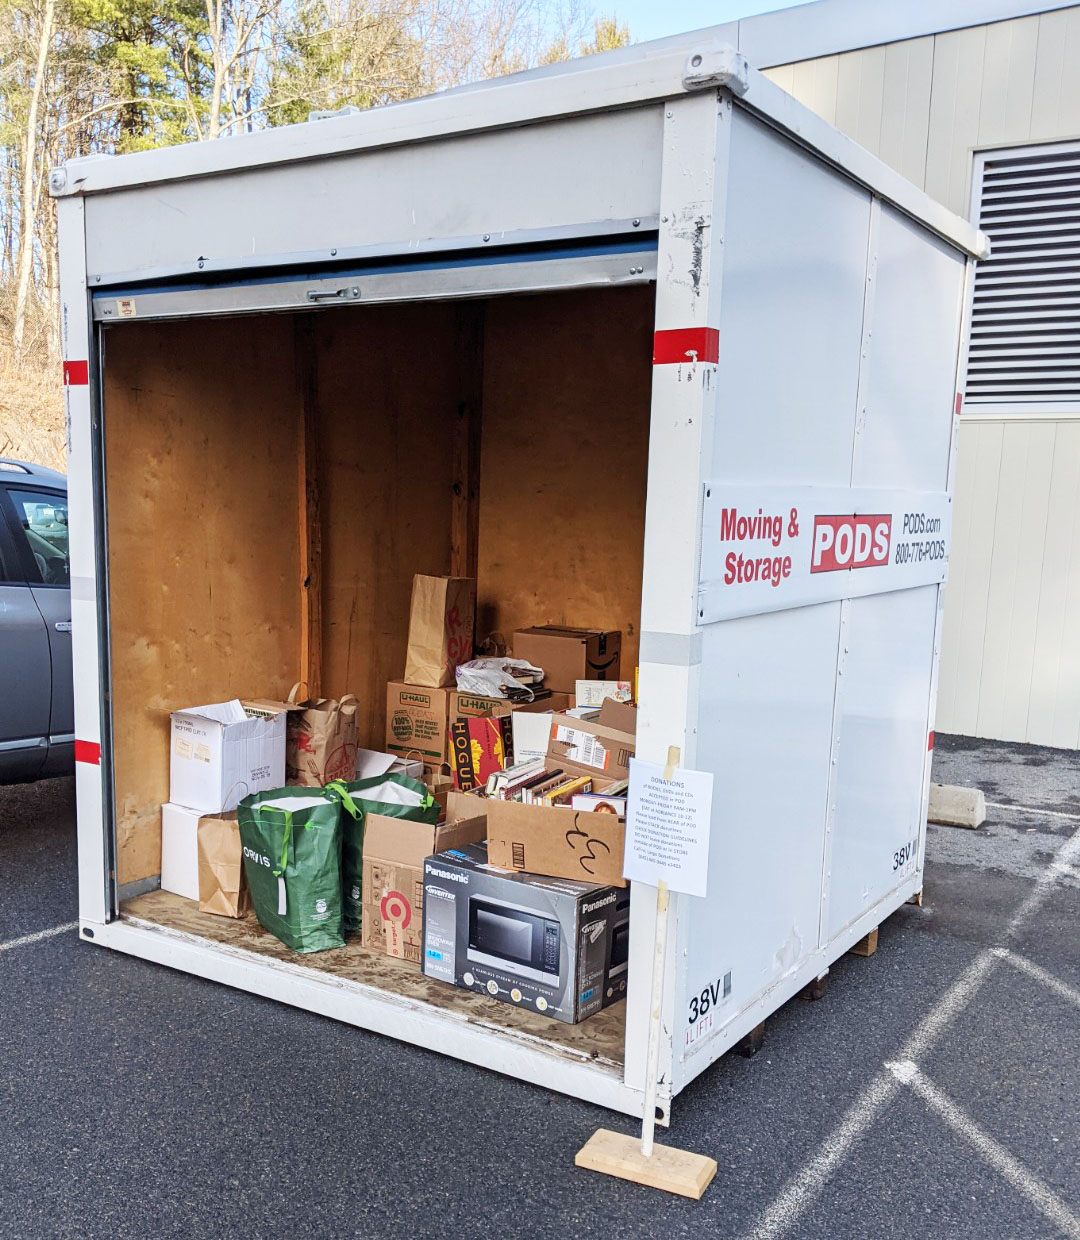 Picture of Pod storage container used by the Friends to accept donations